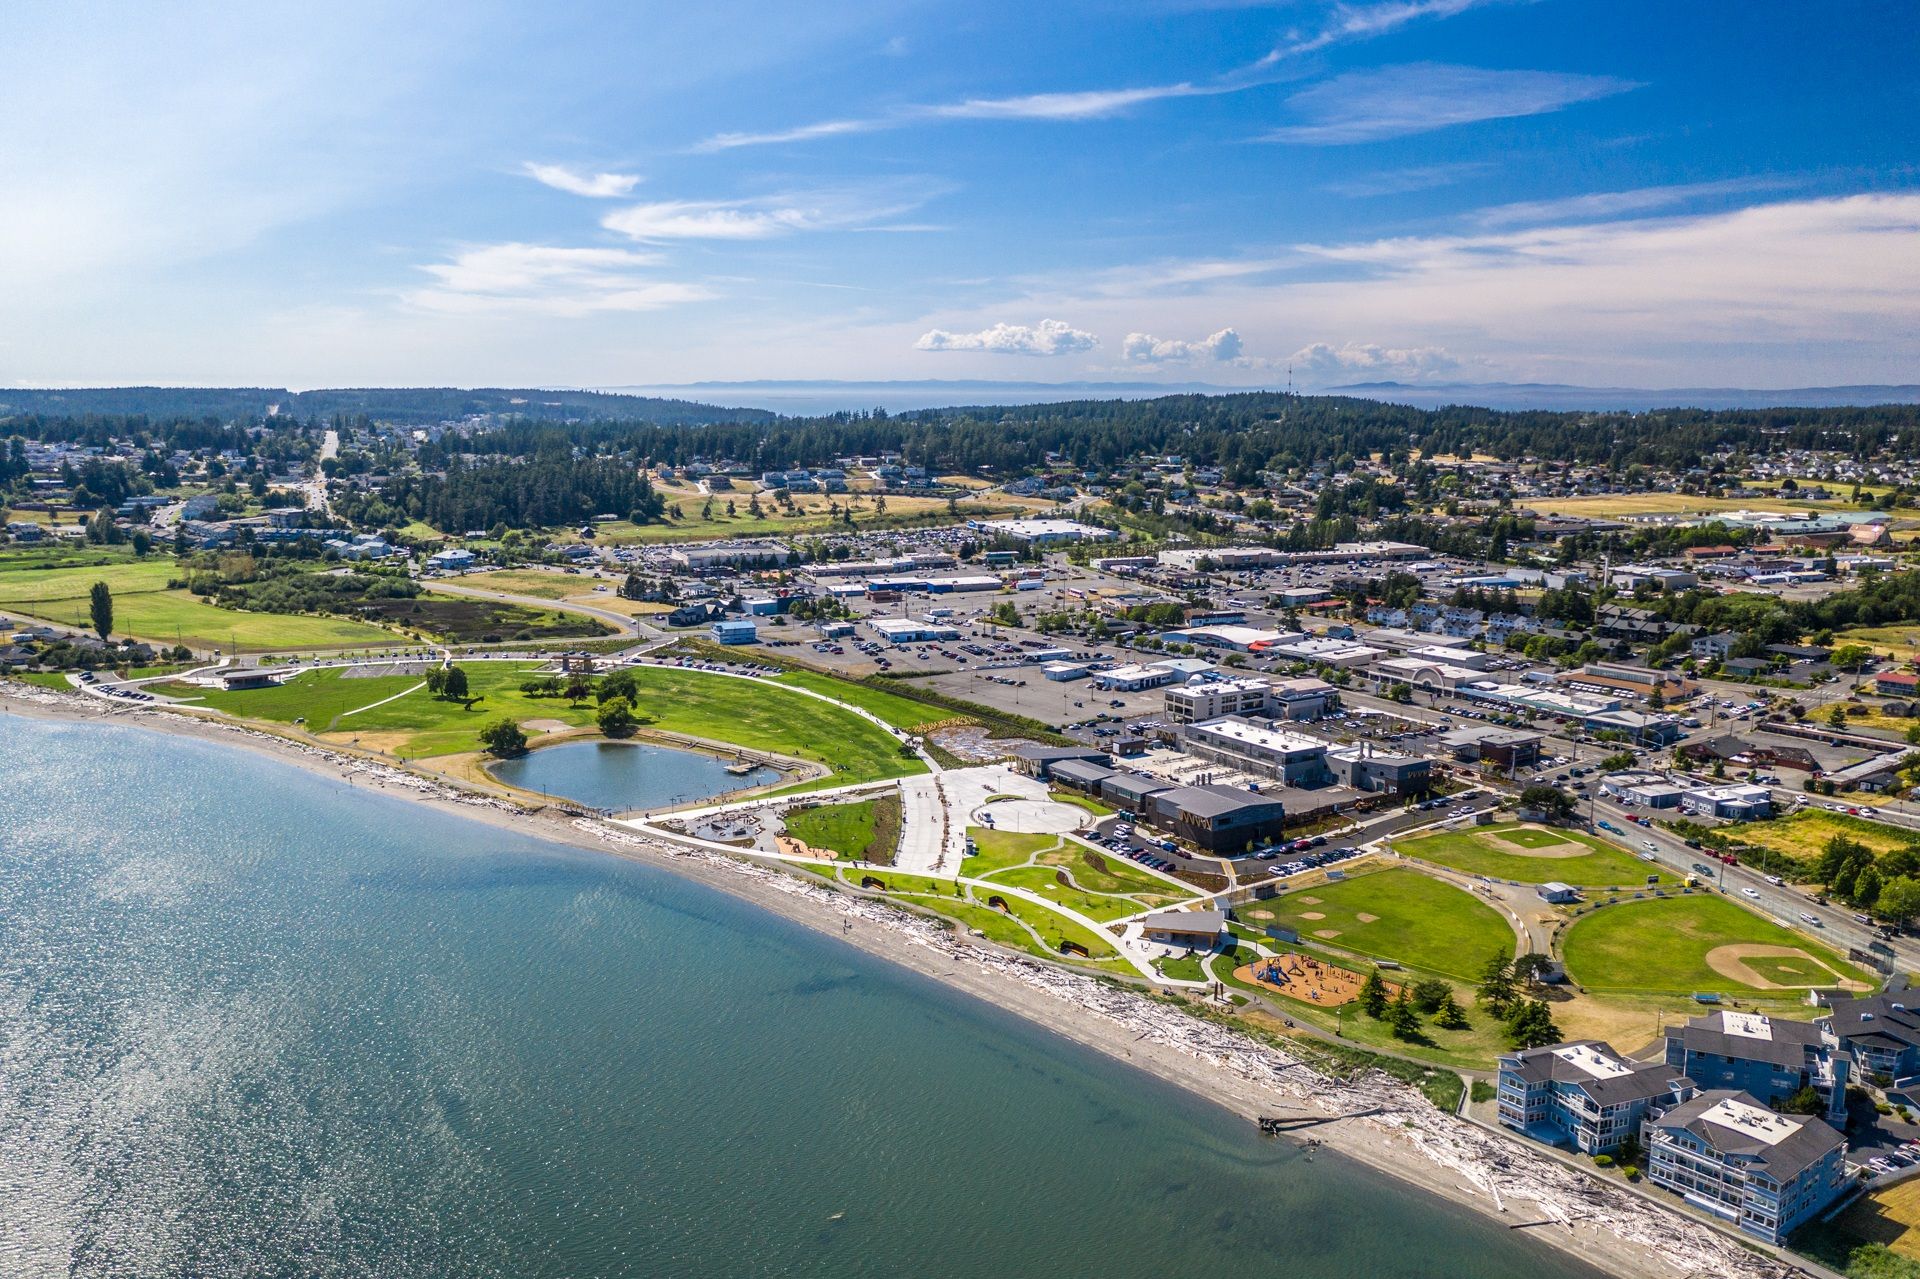 Windjammer Park in front of the city of oak harbor  from drone over oak harbor